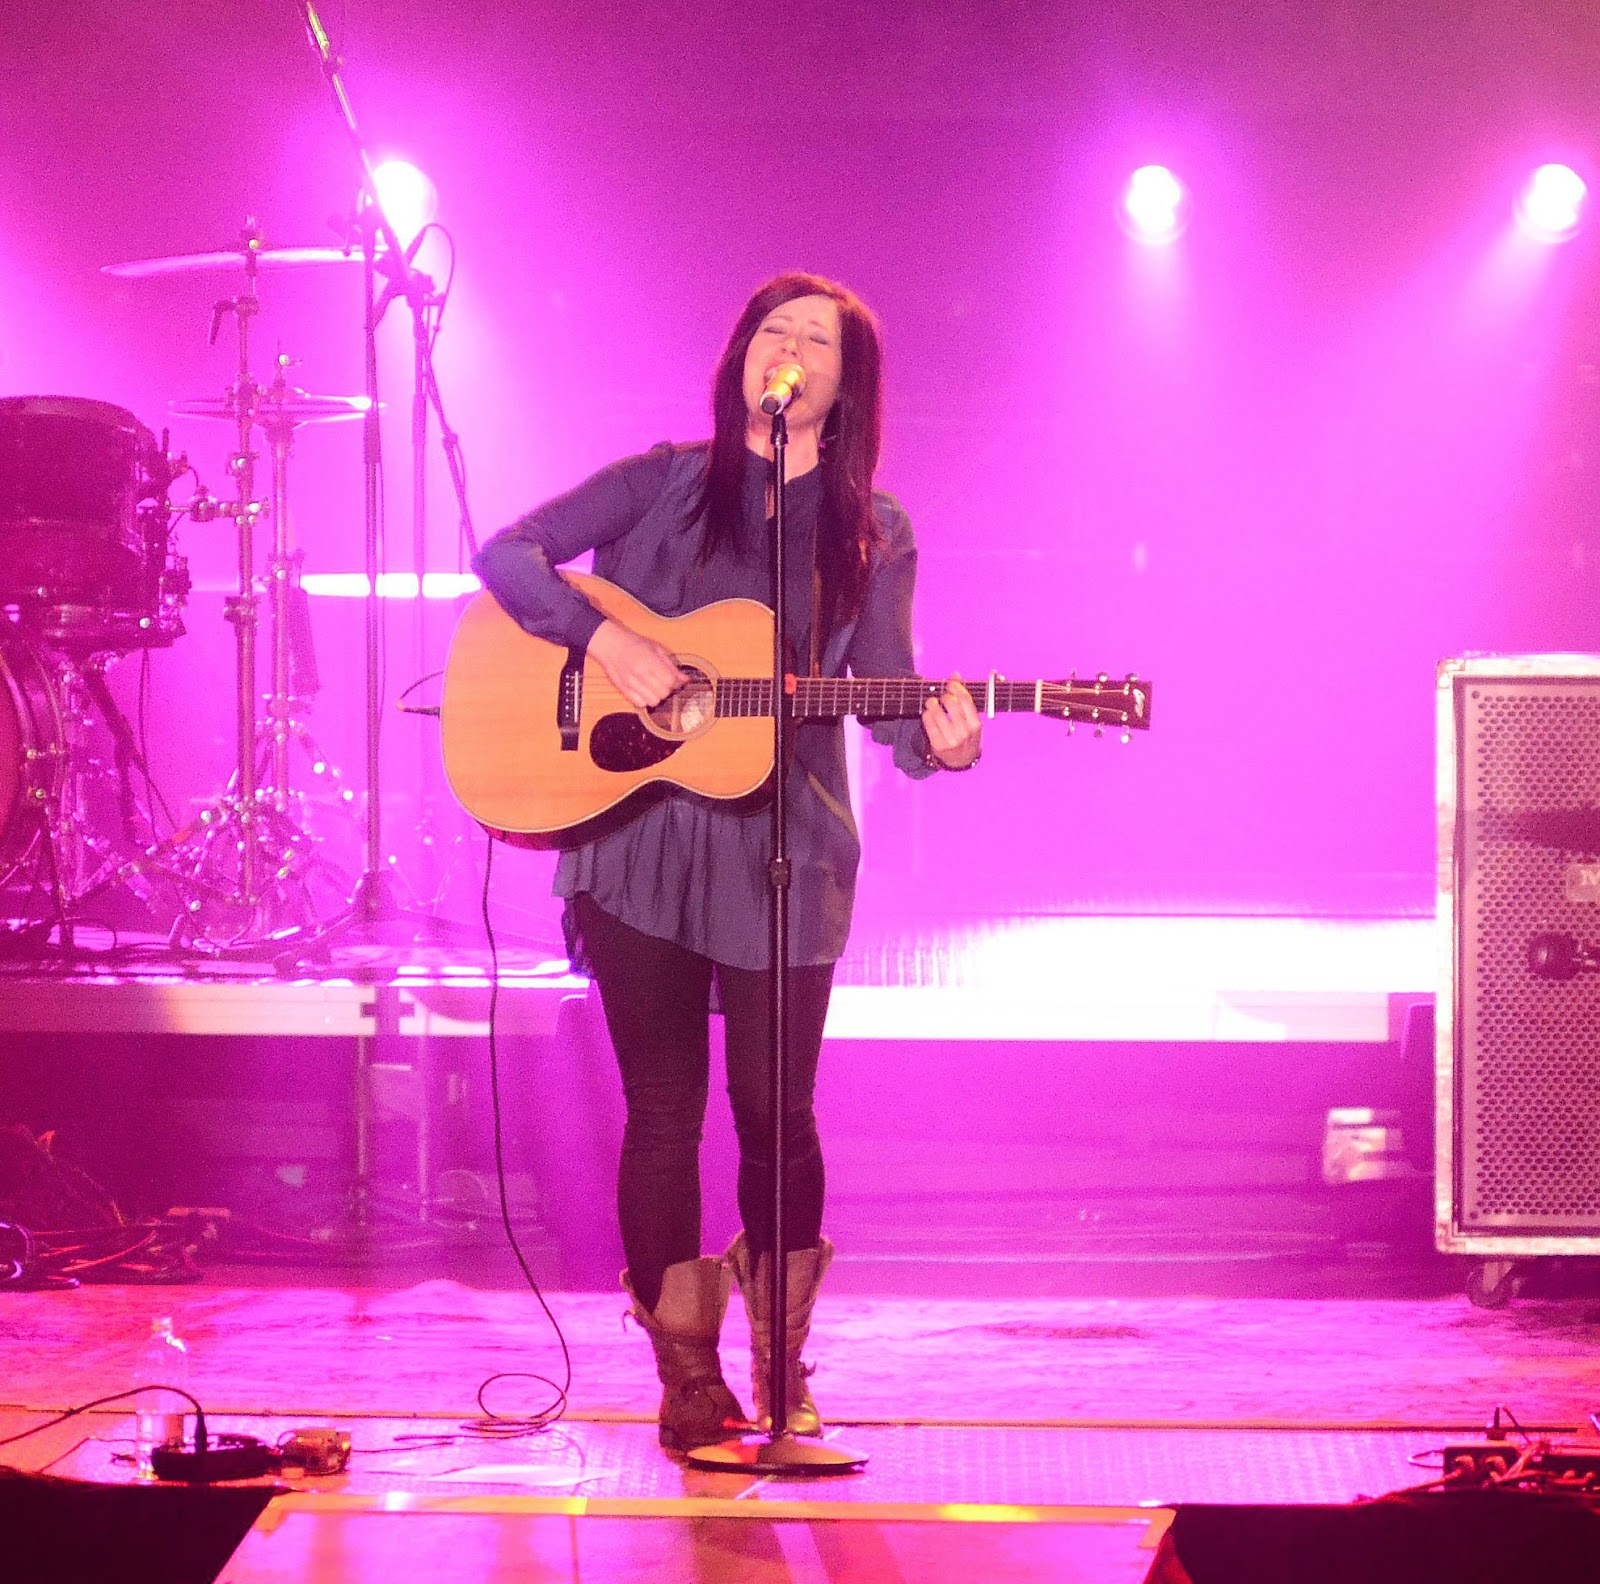 Kari Jobe - Majestic Live 2014 live album with guitar